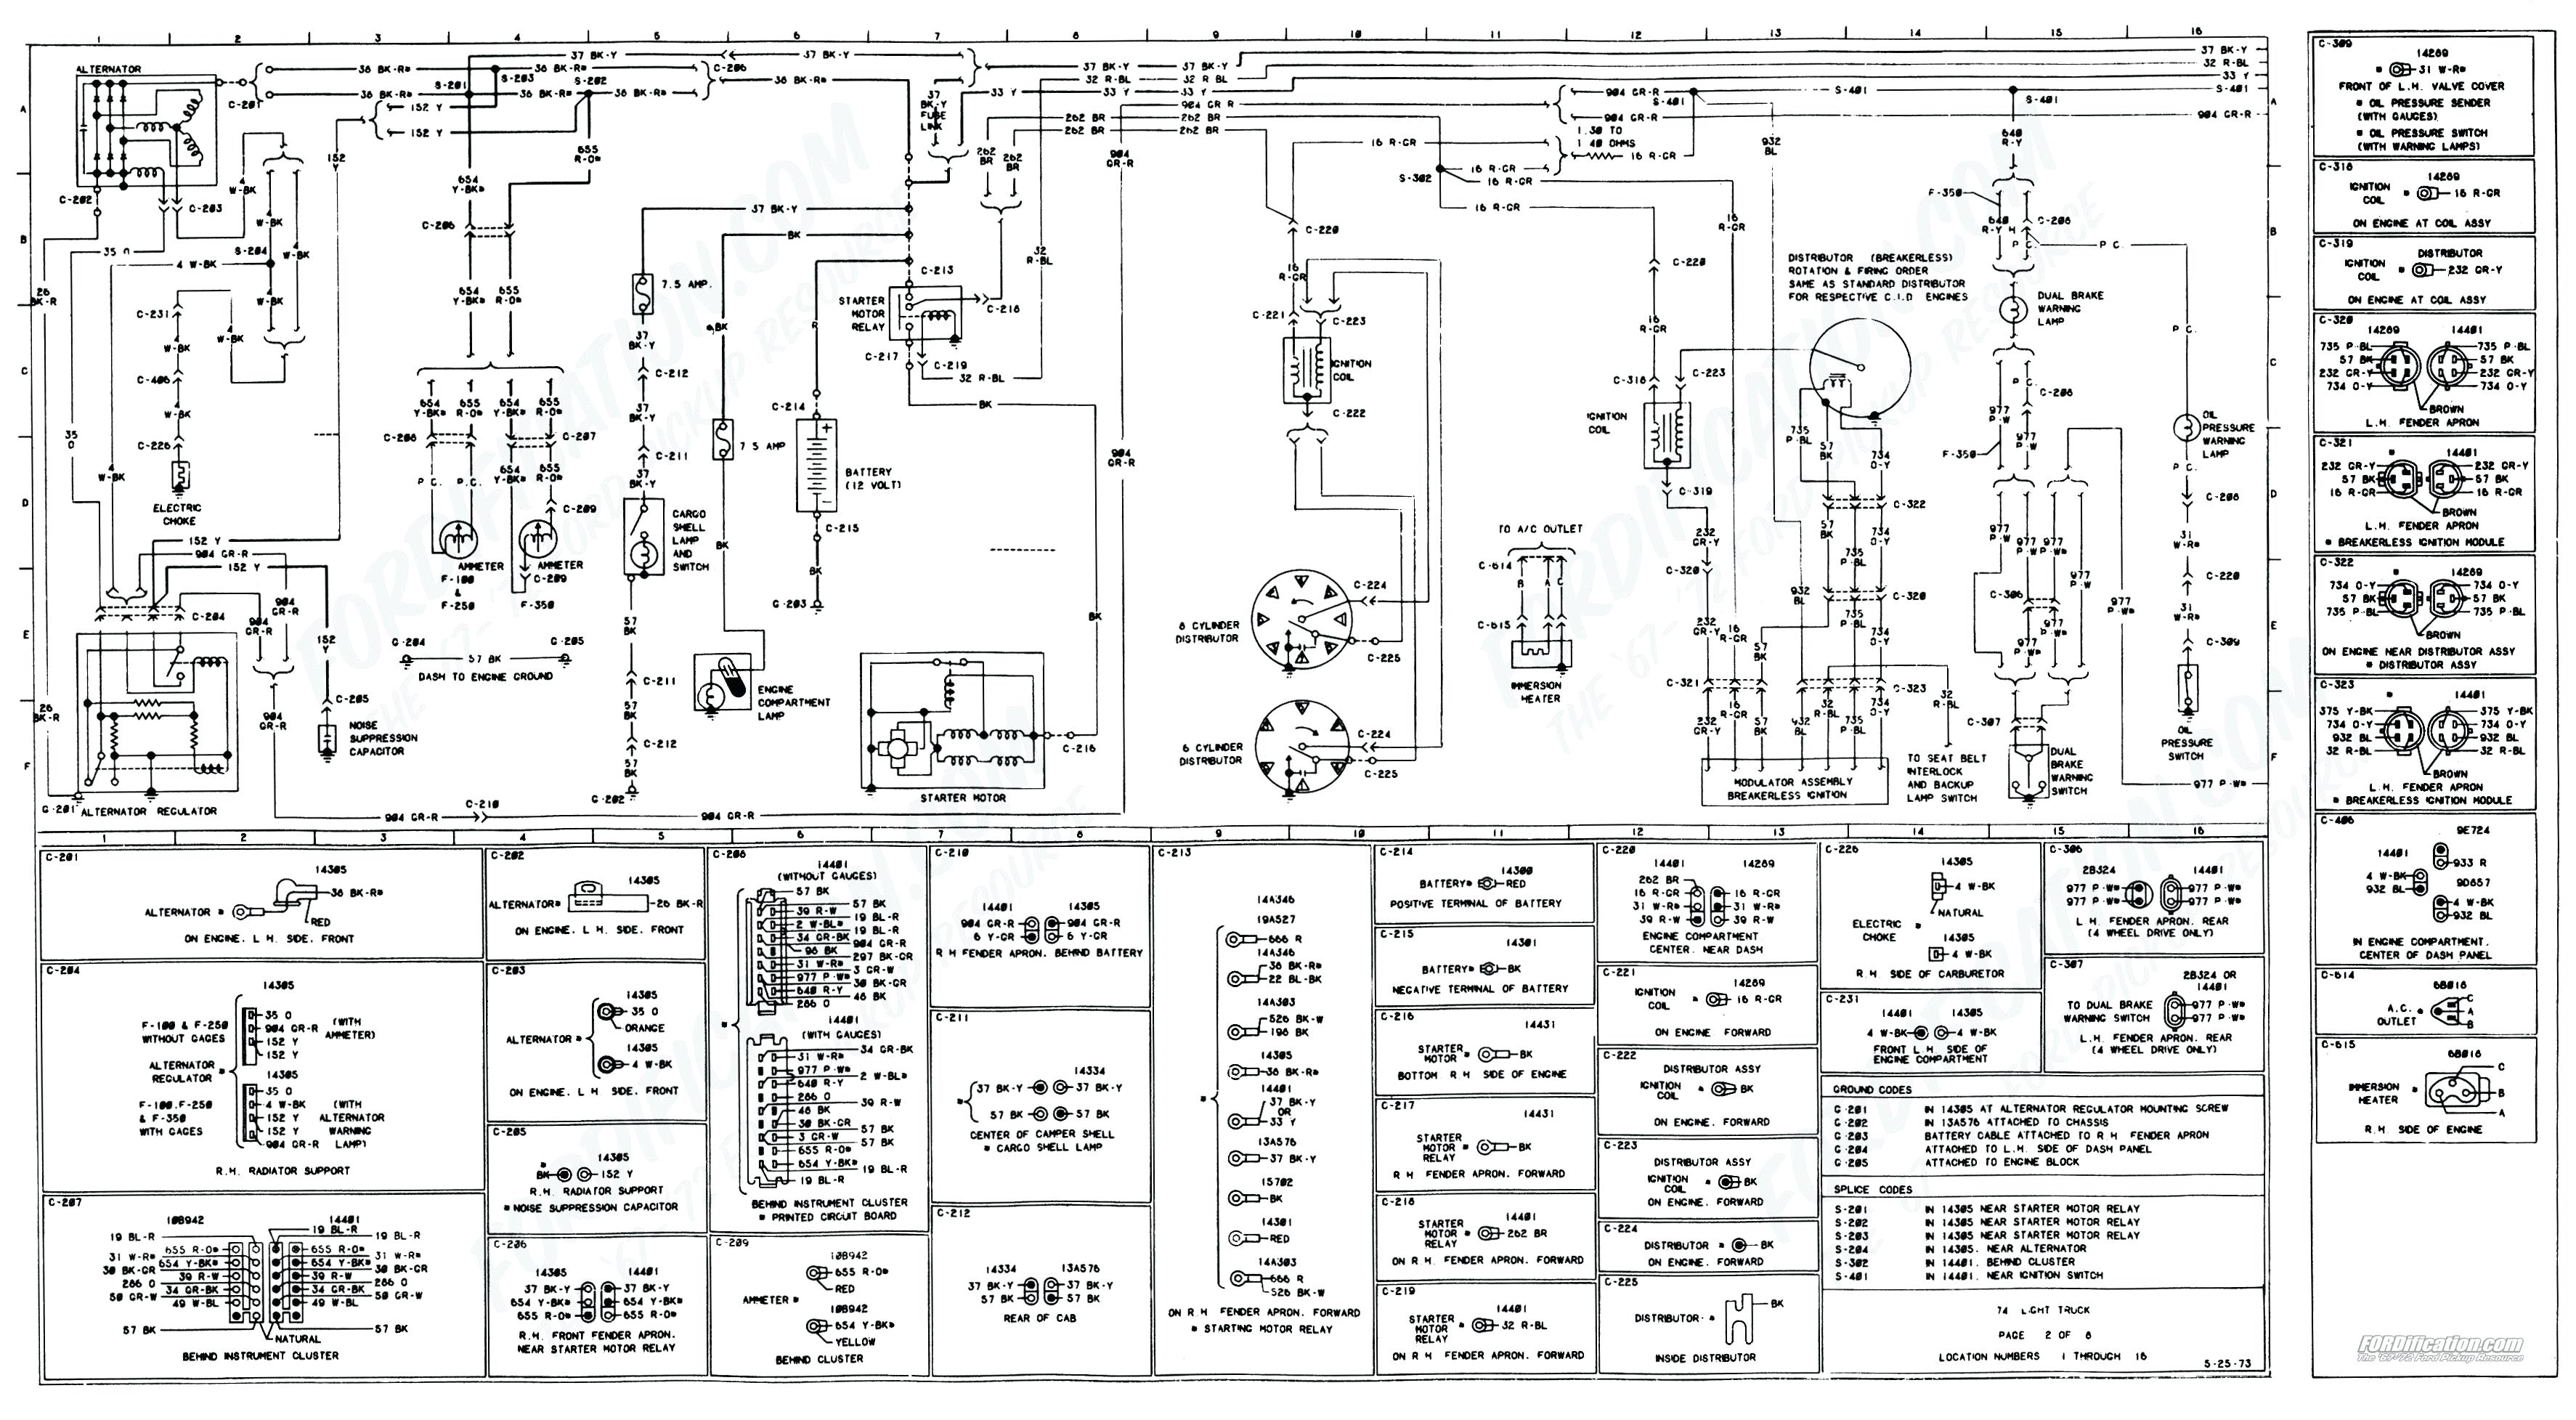 ford f650 wiring diagram Download-2003 ford F650 Fuse Box Diagram Best 2005 F 650 Wiring Diagram Generous ford Contemporary 5-c